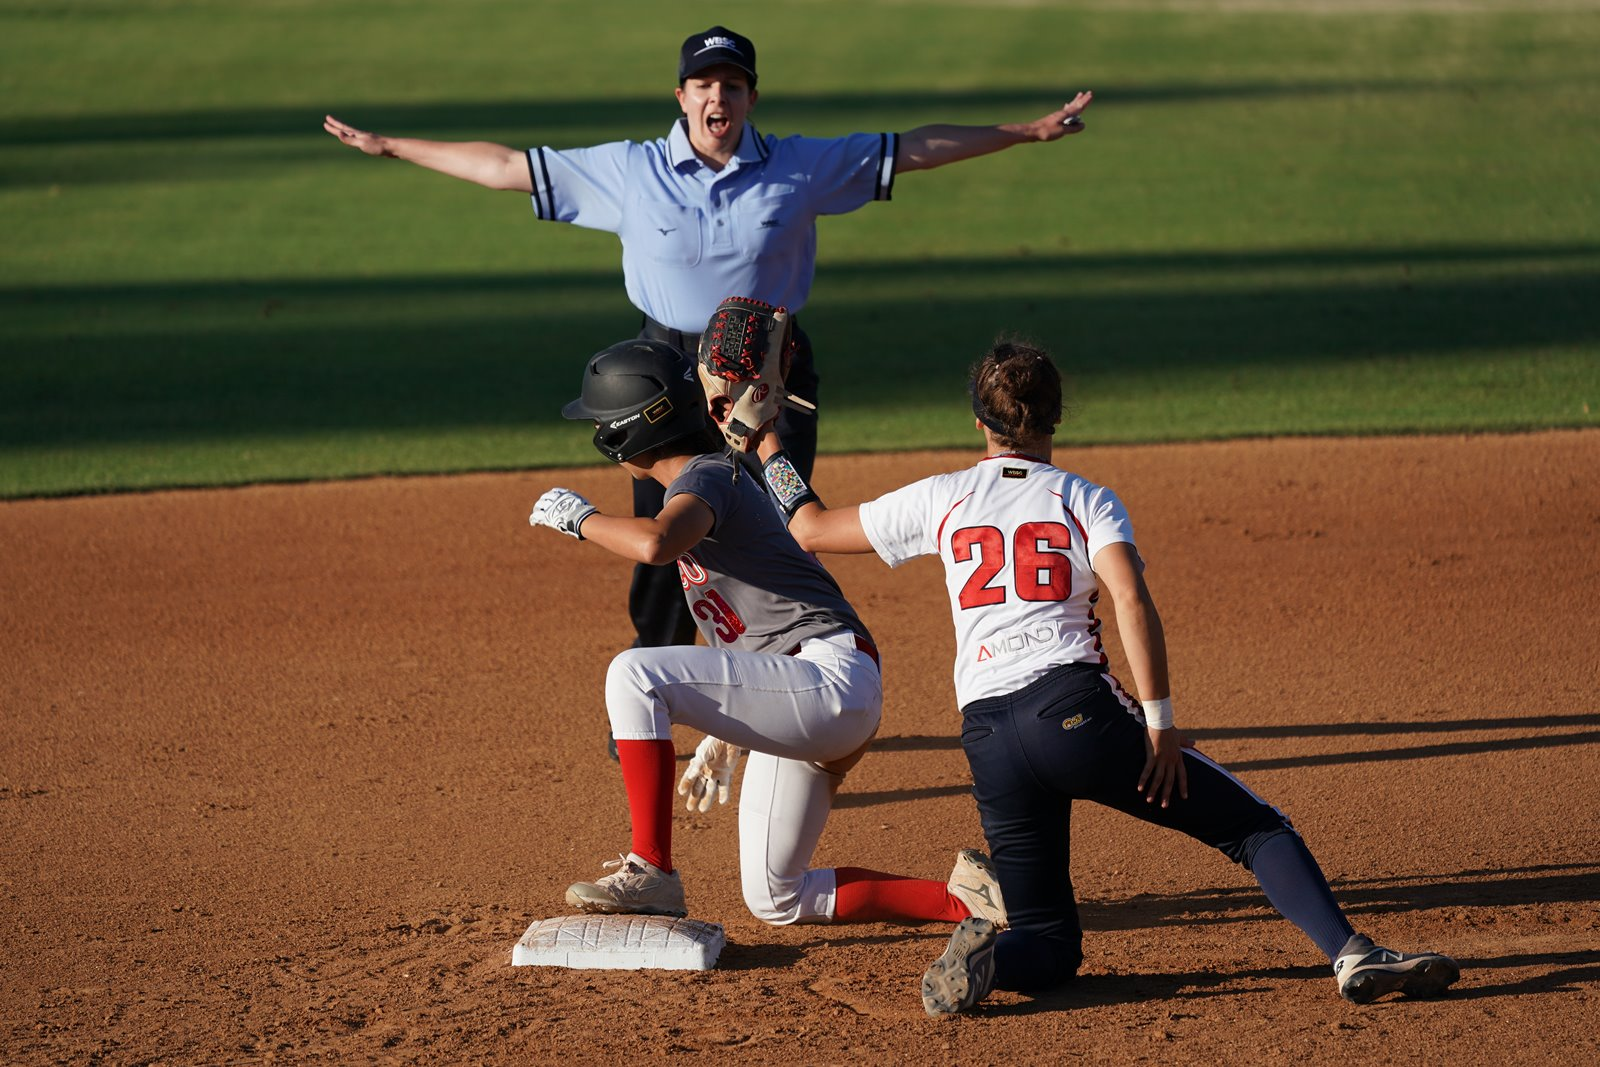 Czech Republic shortstop Barbora Saviola played superb defense